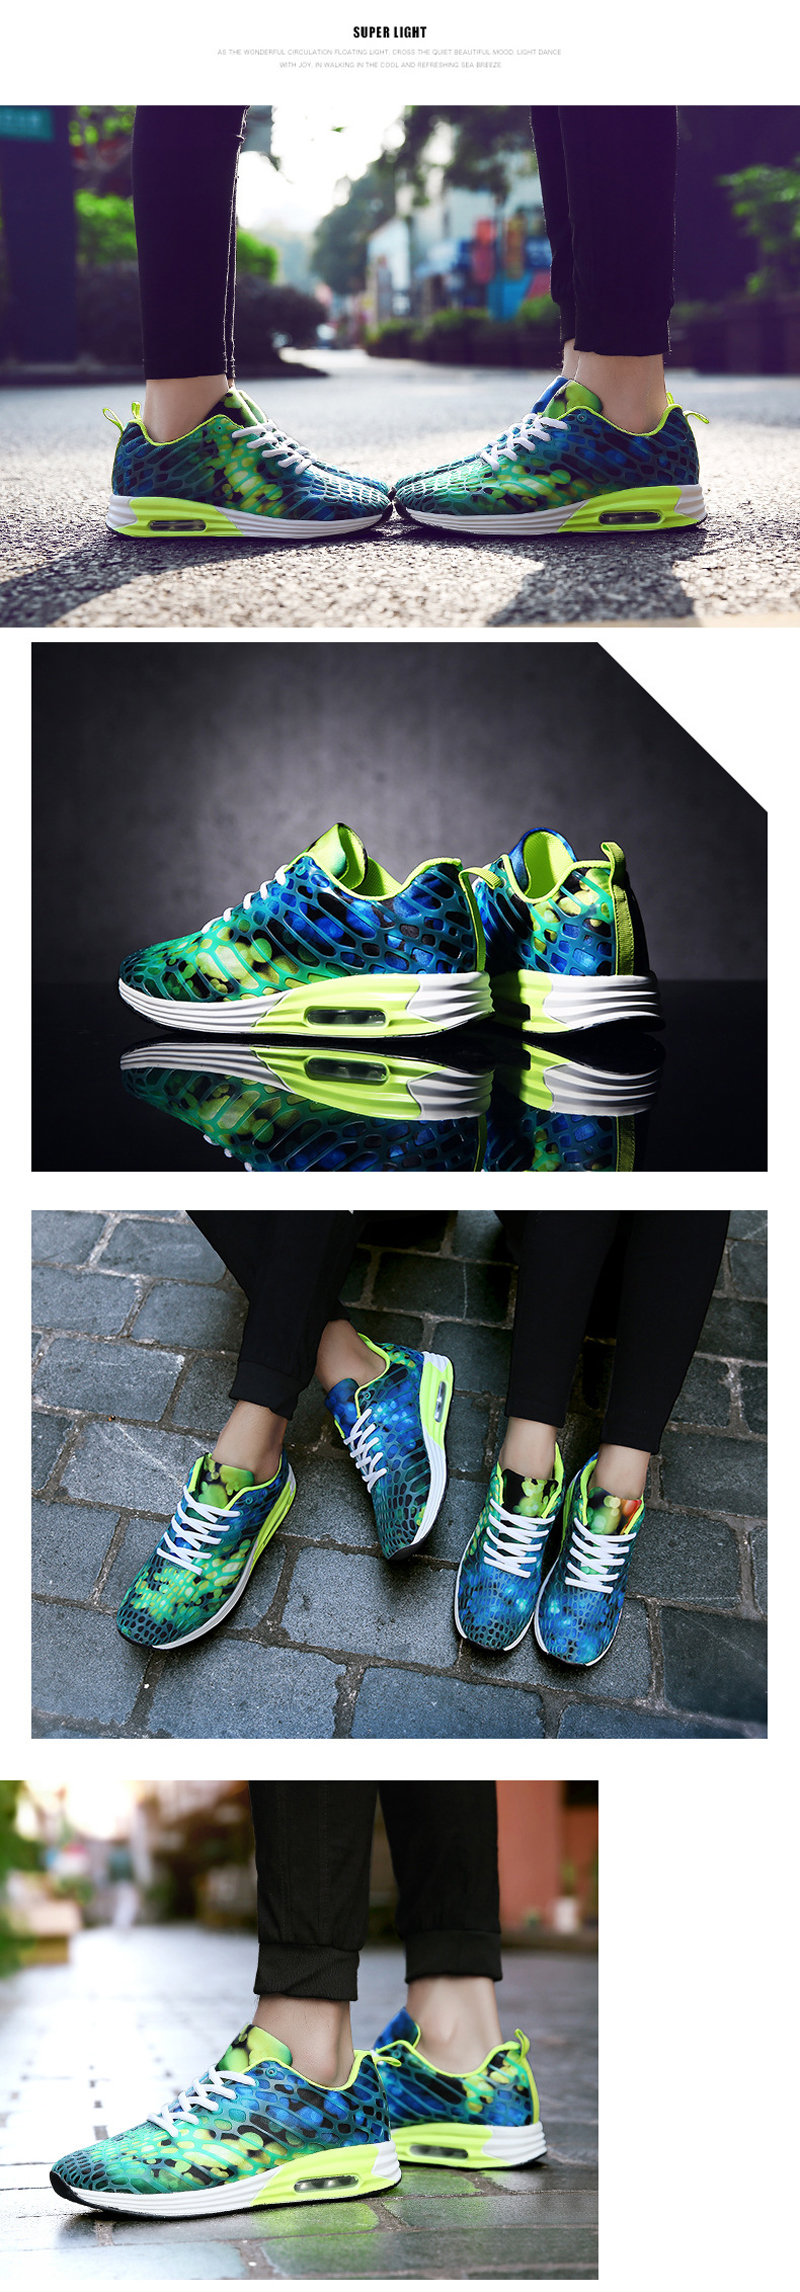 RY-5022 Air Cushion Camouflage Net Casual Women Sneakers Shock-absorbent Couple Sport Running Shoe